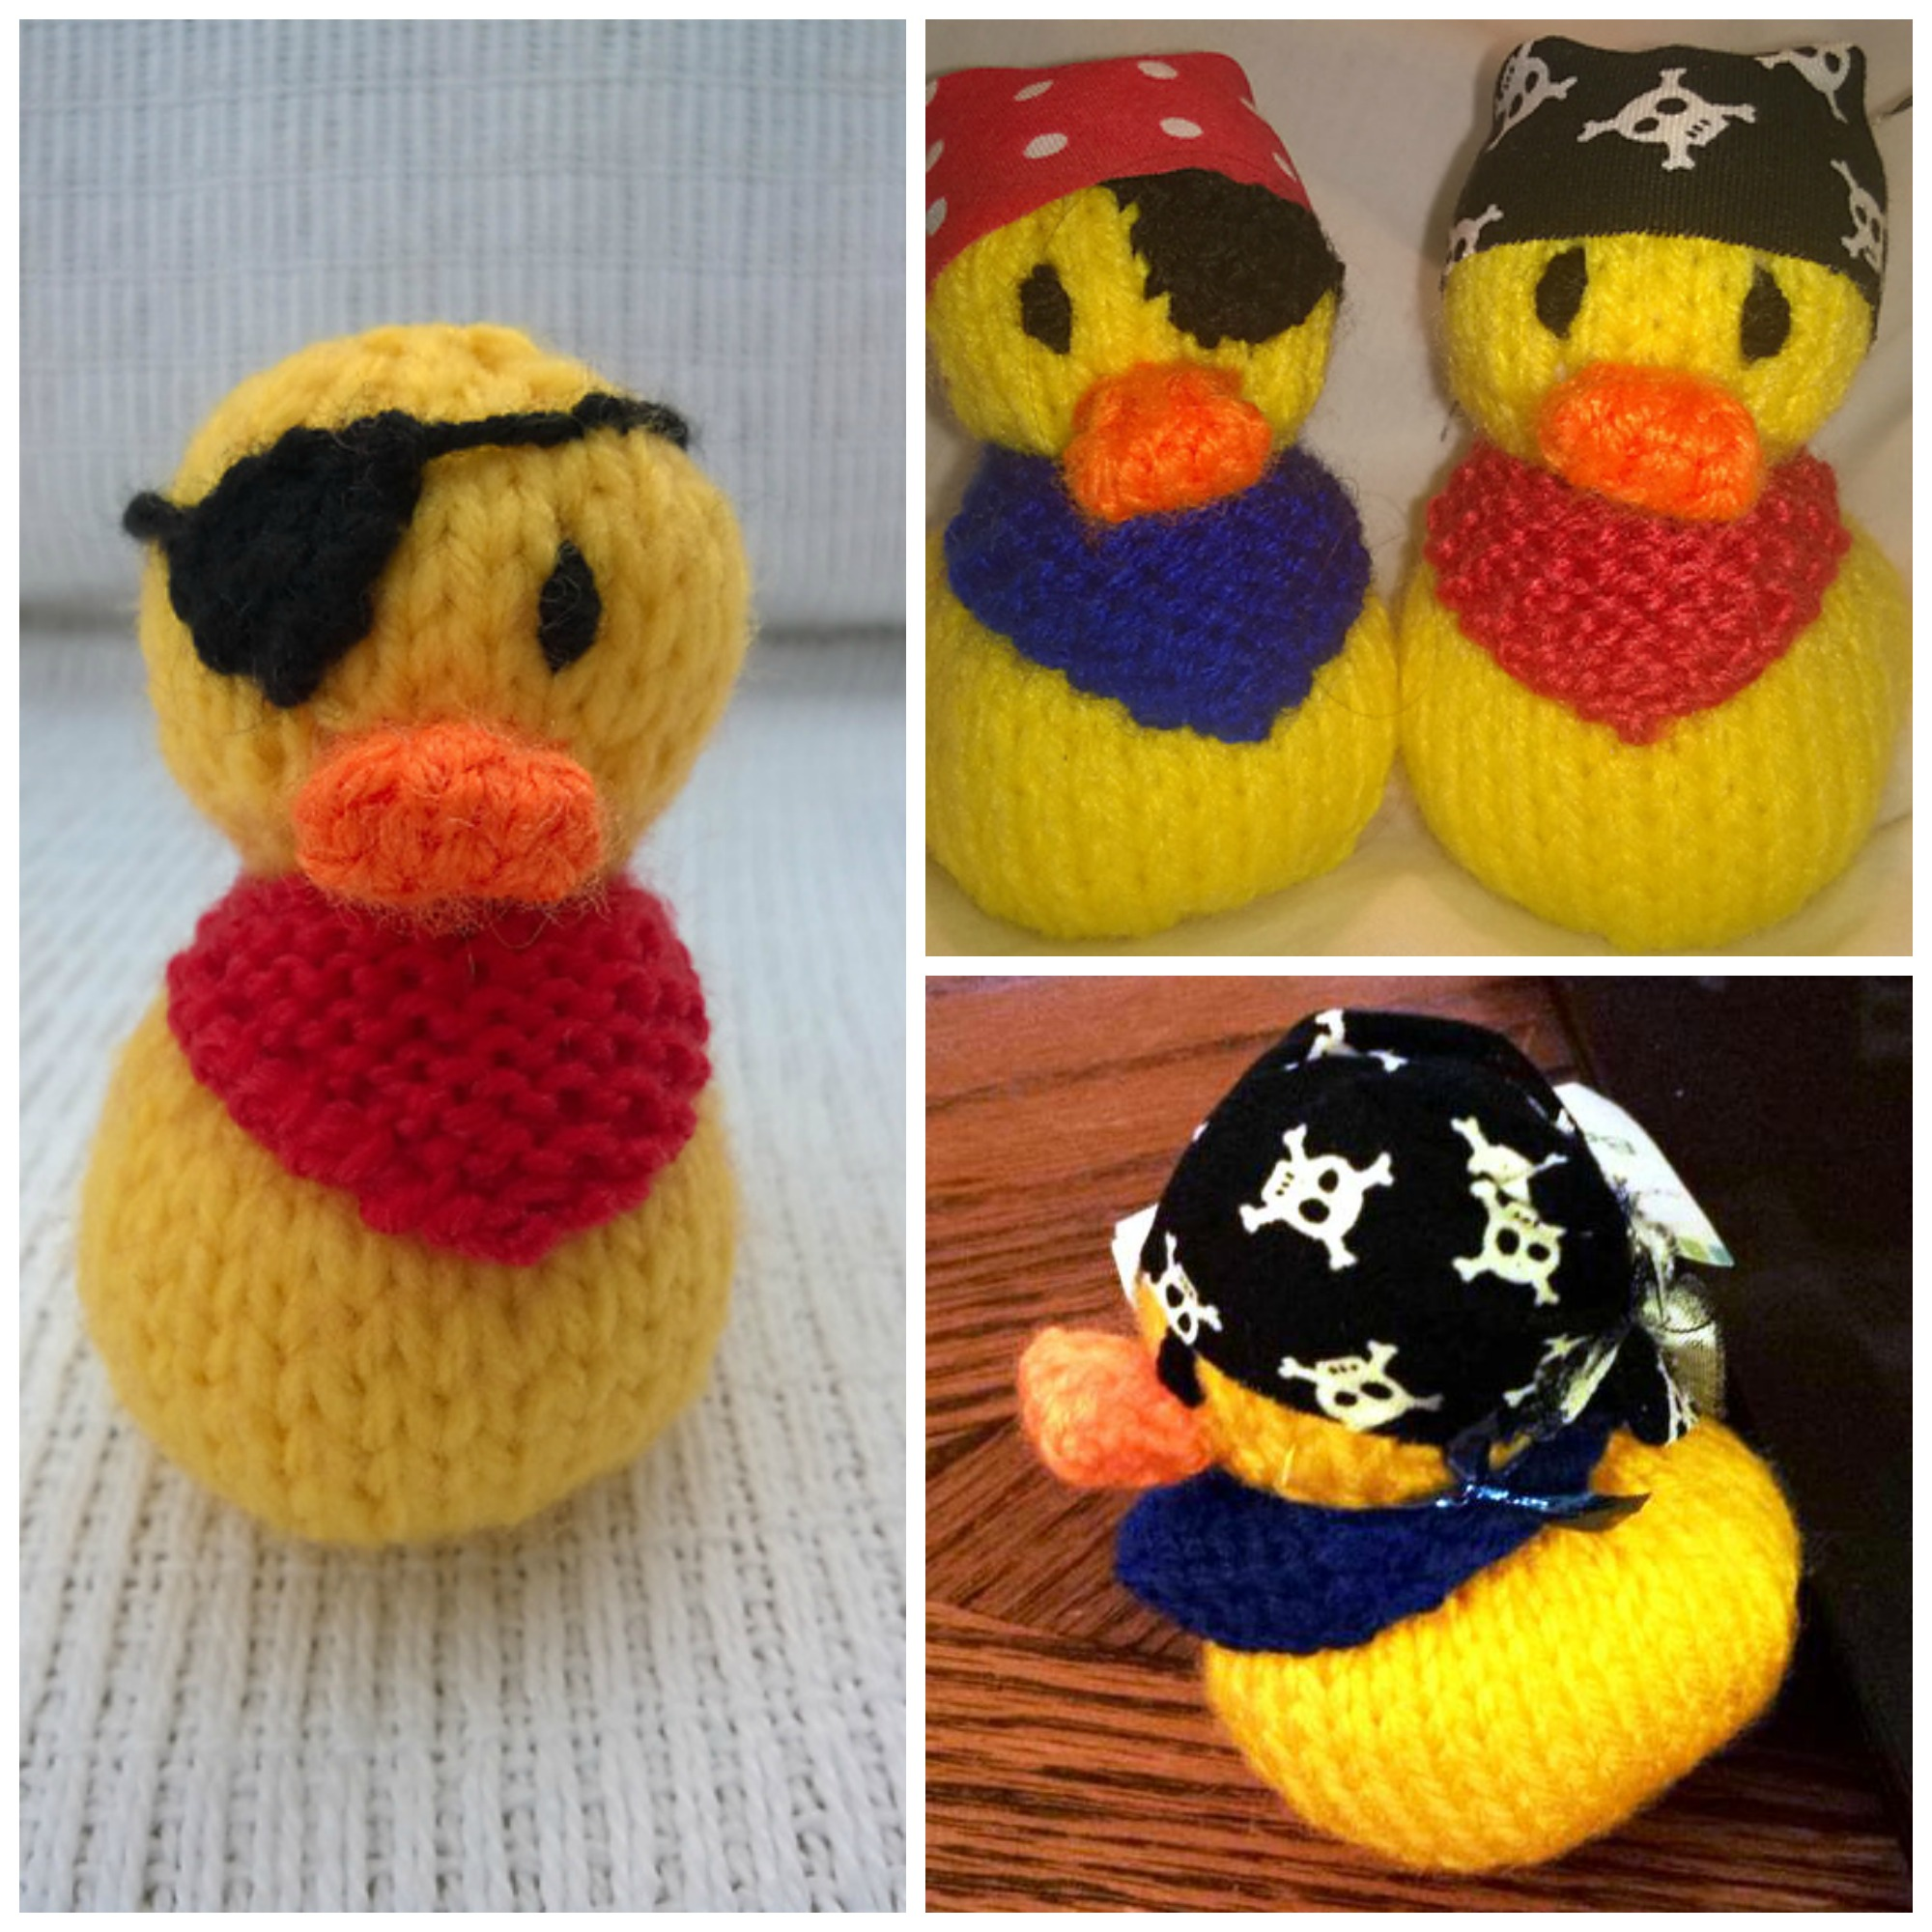 Pirate ducks found in geocaches worldwide